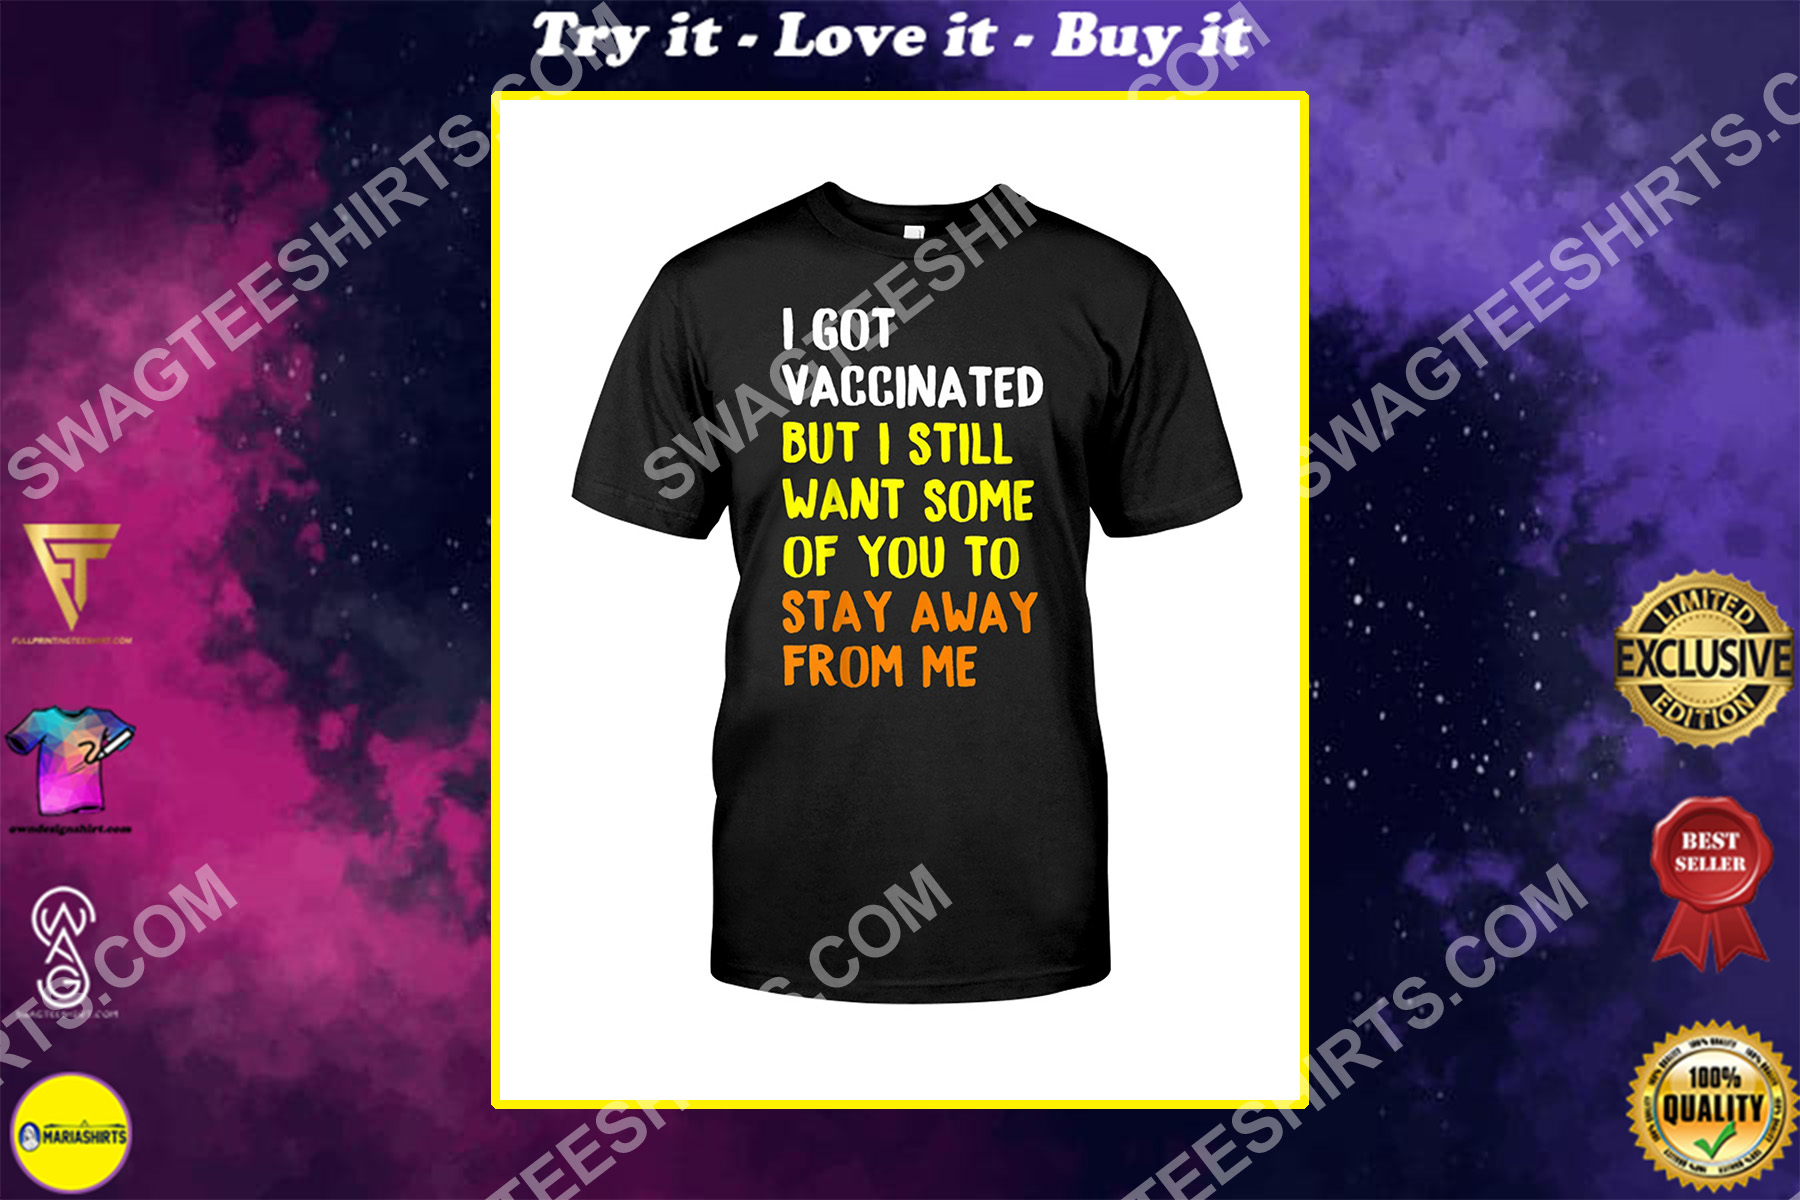 I Got Vaccinated But I Still Want Some of You To Stay Away From Me Shirt